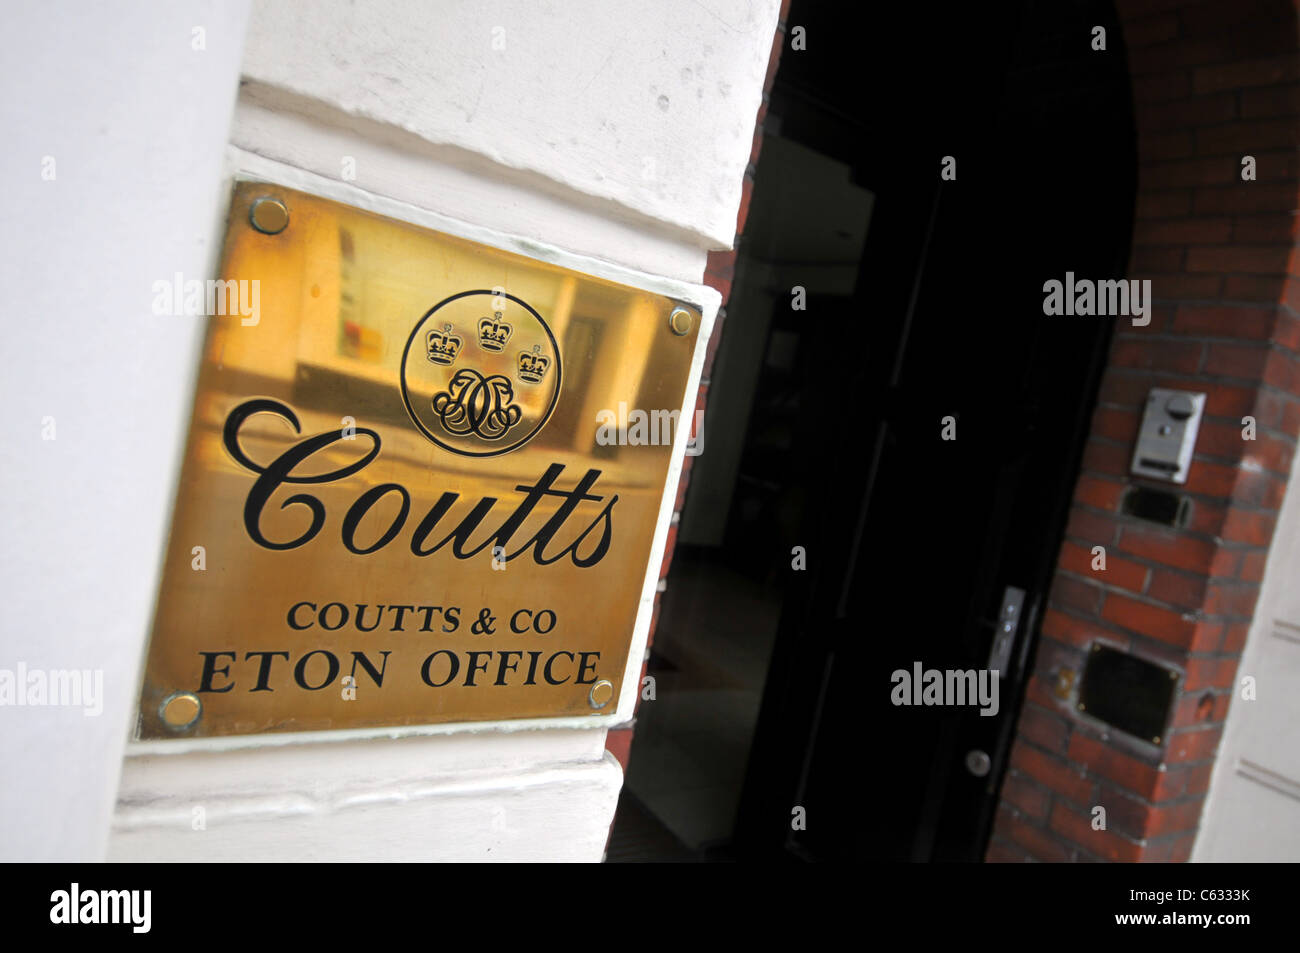 Coutts & Co, private bank, Eton, Windsor, Berkshire, Britain, UK - Stock Image